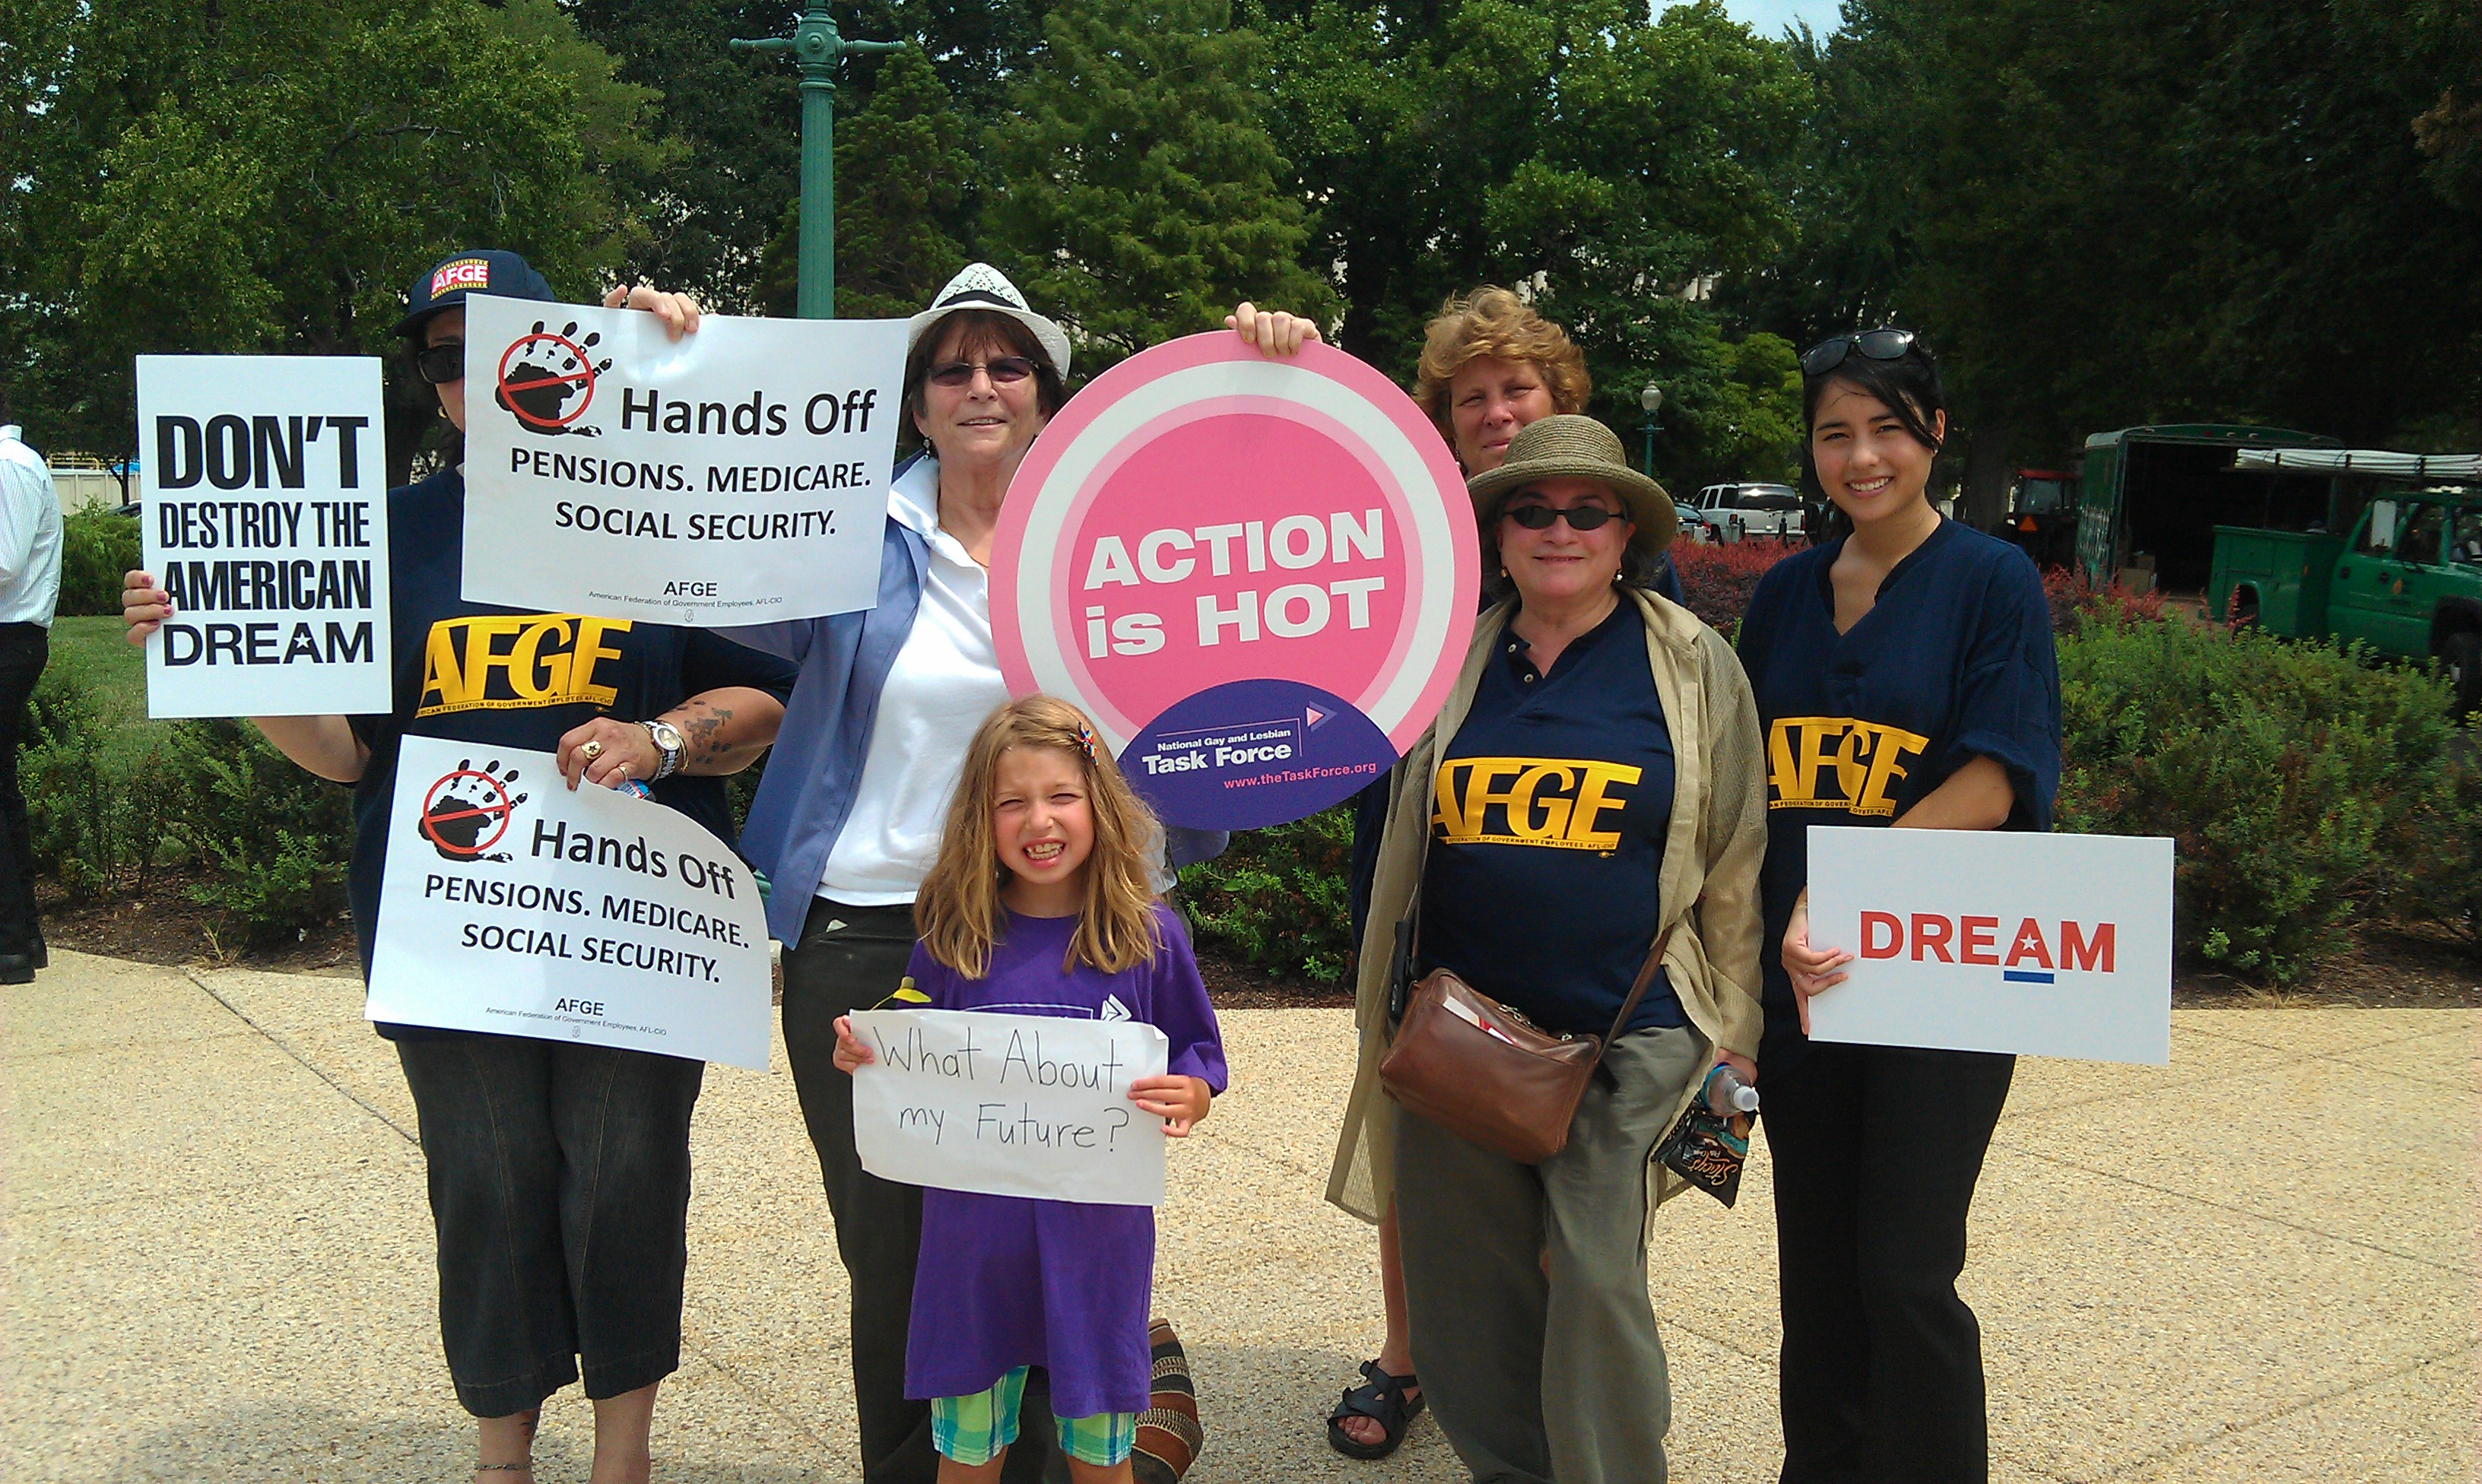 Don't destroy the American dream - National LGBTQ Task Force